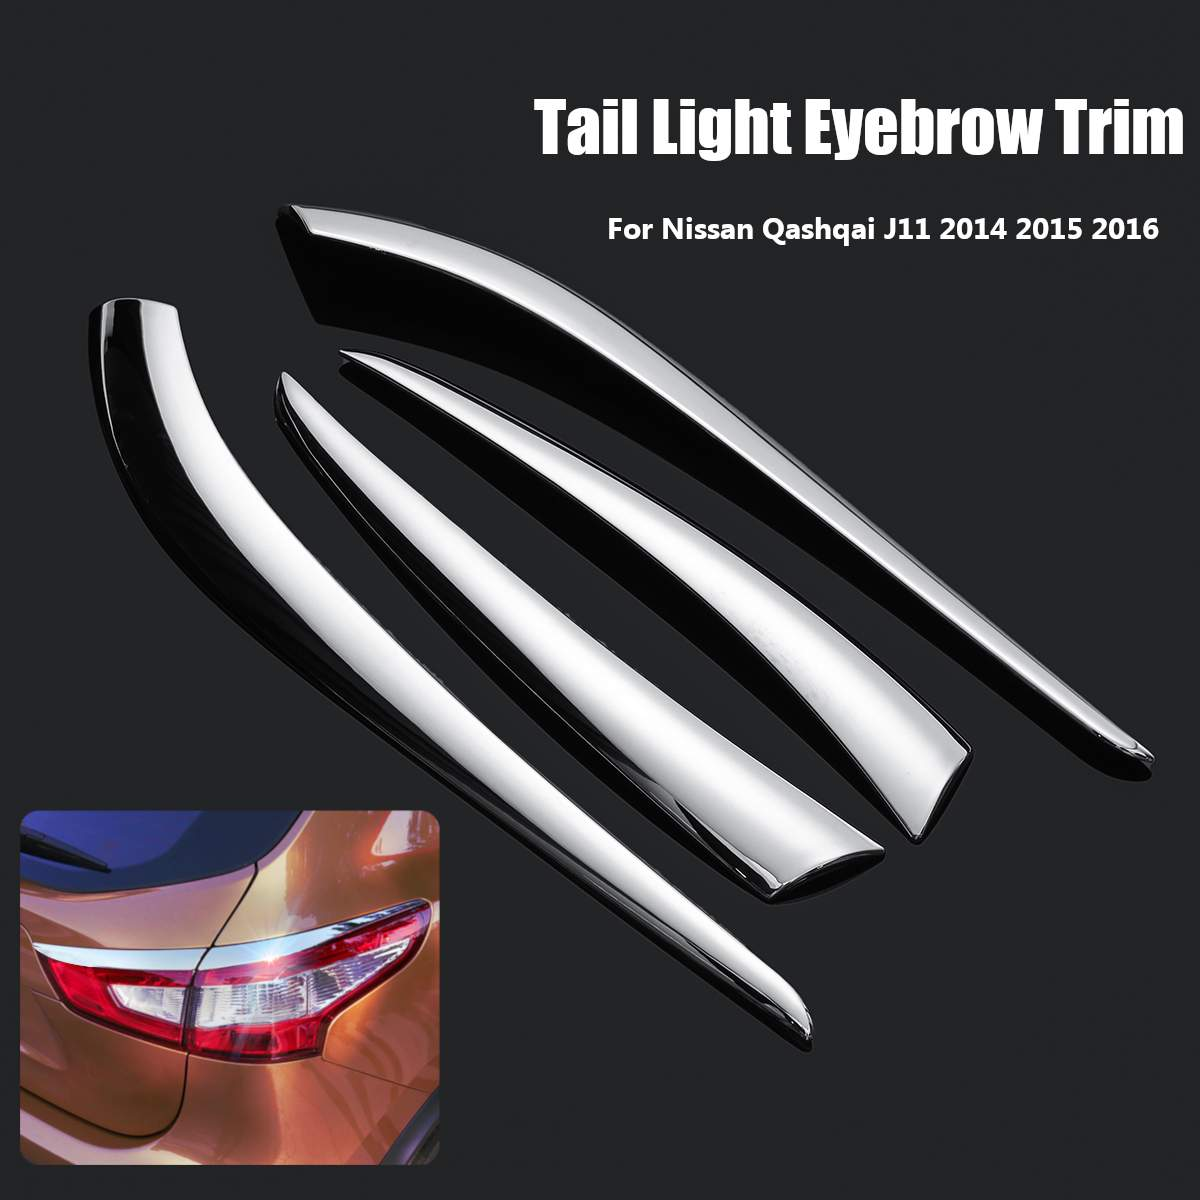 Car Rear Tail Light Lamp Eyebrow Eyelid Cover Trim ABS Chrome Decoration Accessories For Nissan Qashqai J11 2014 2015 2016